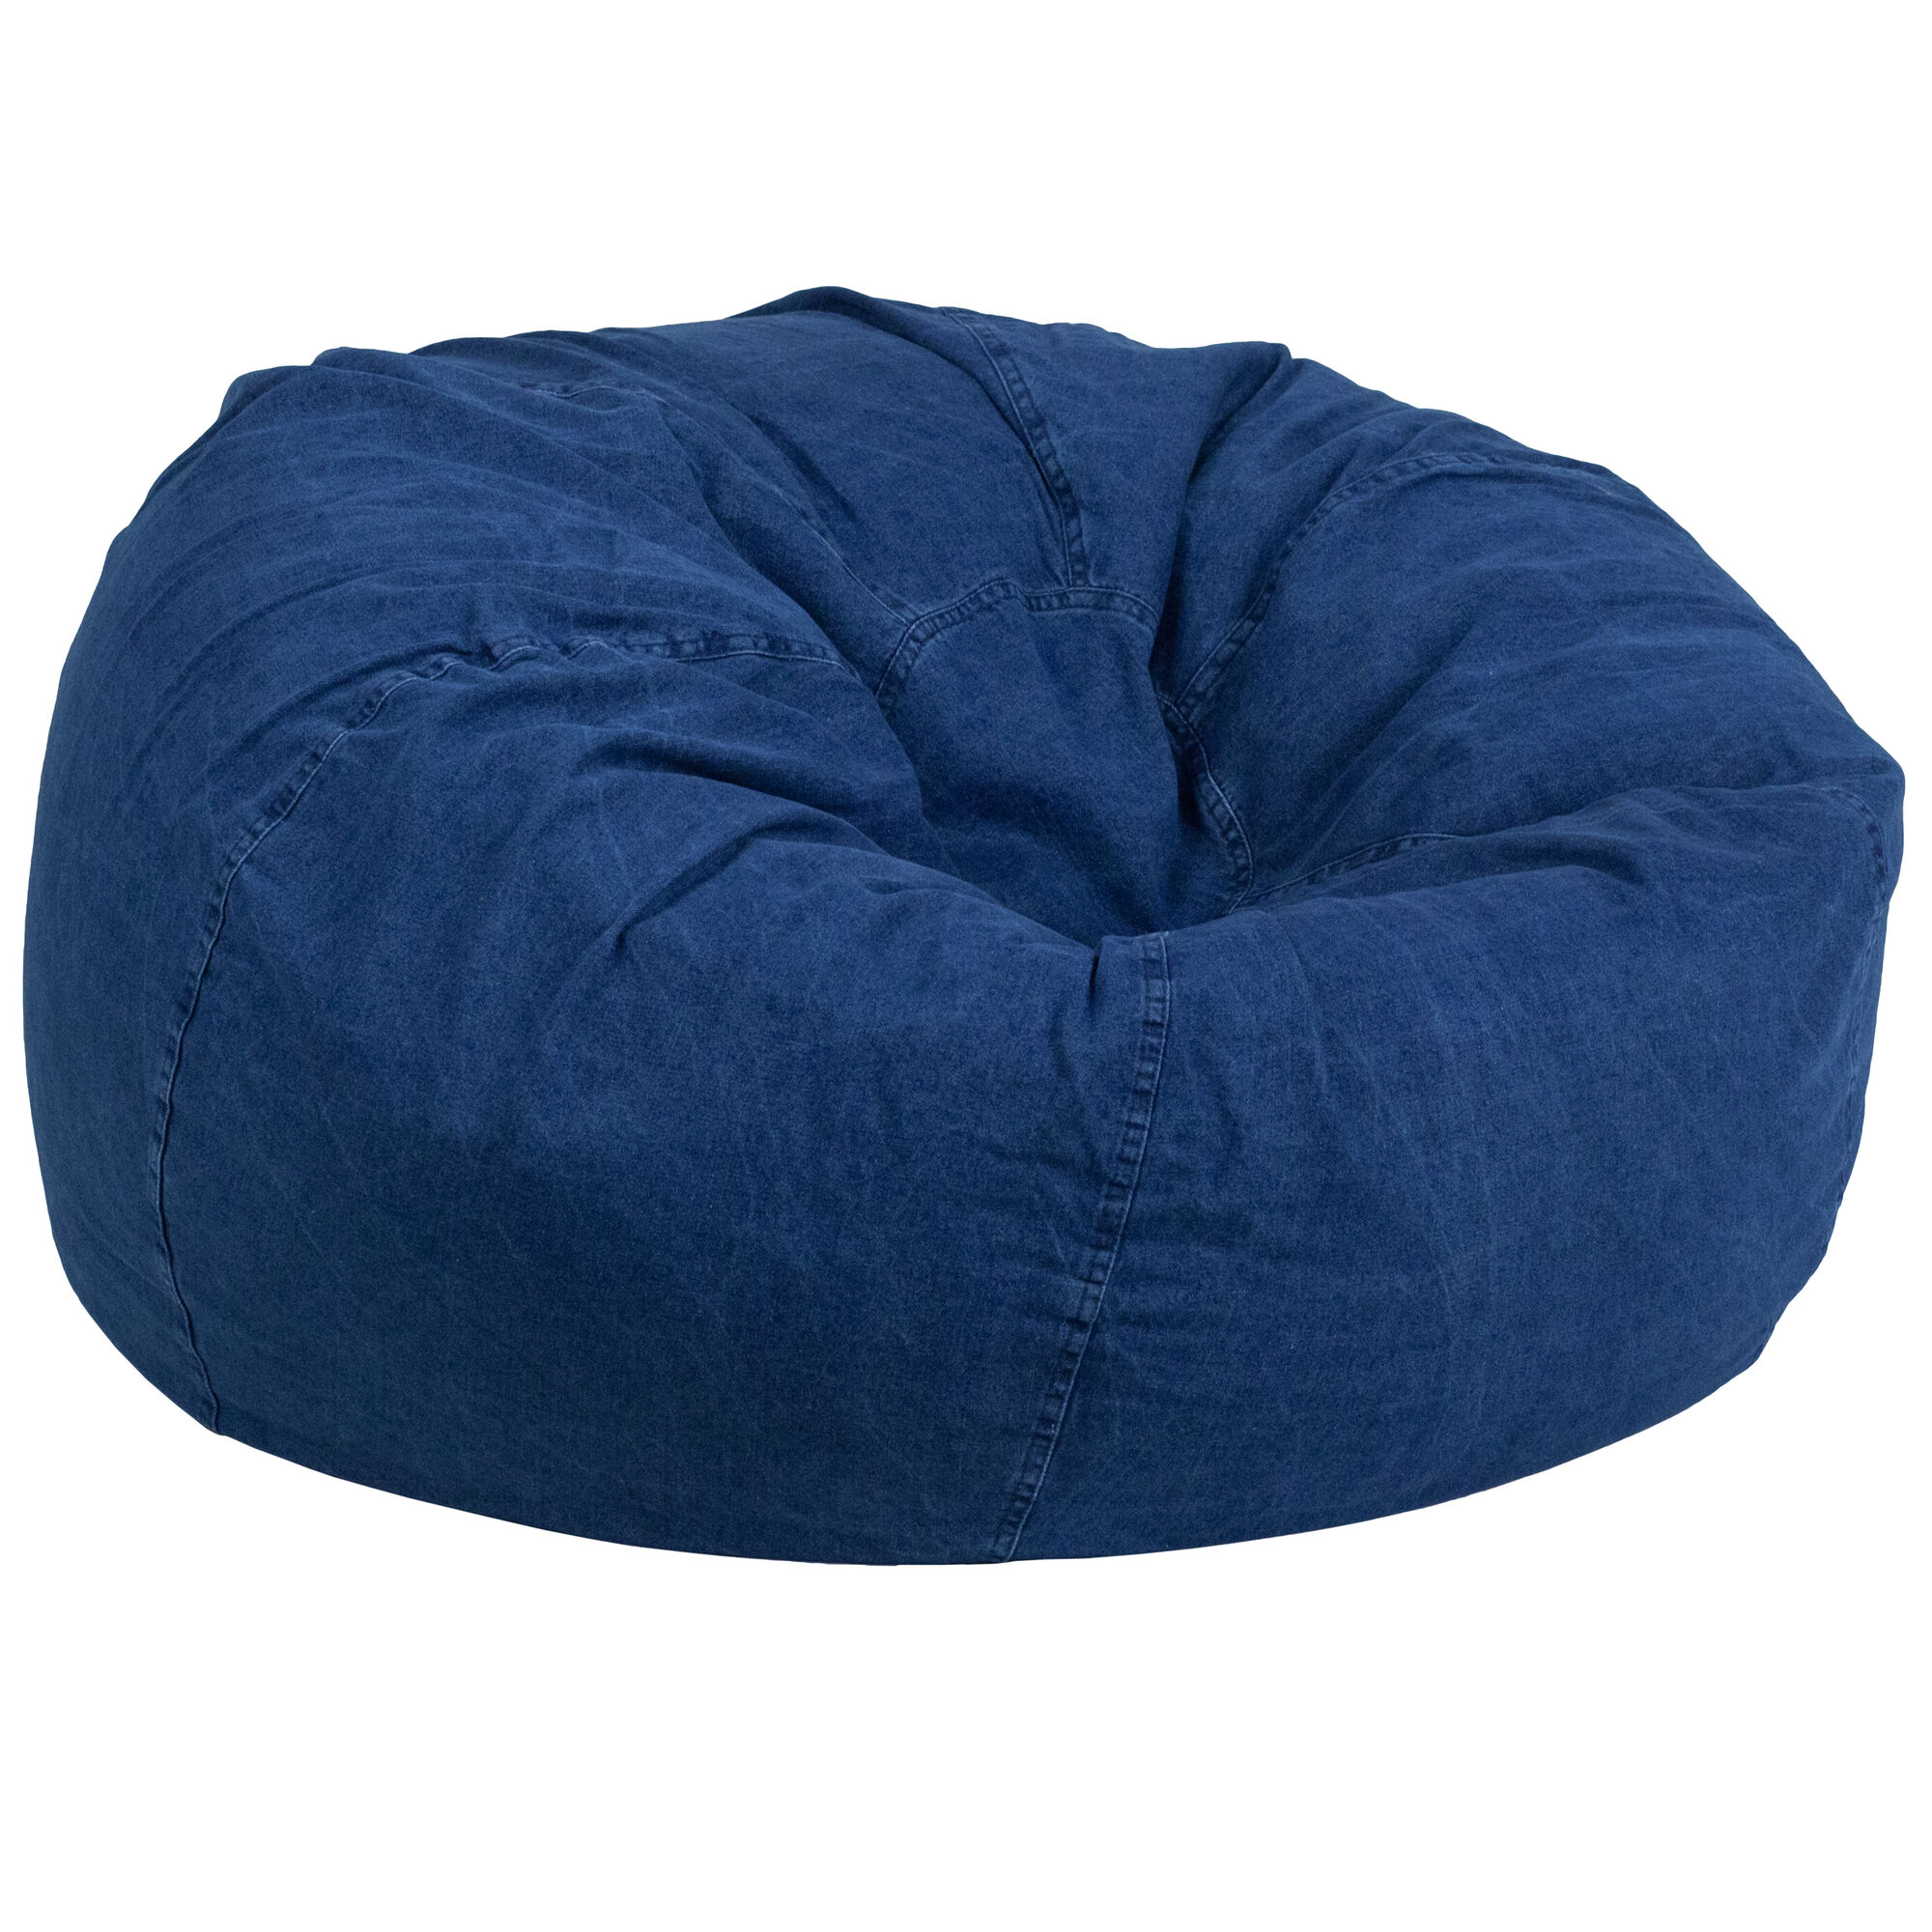 Denim Bean Bag Chair Dg Bean Large Denim Gg